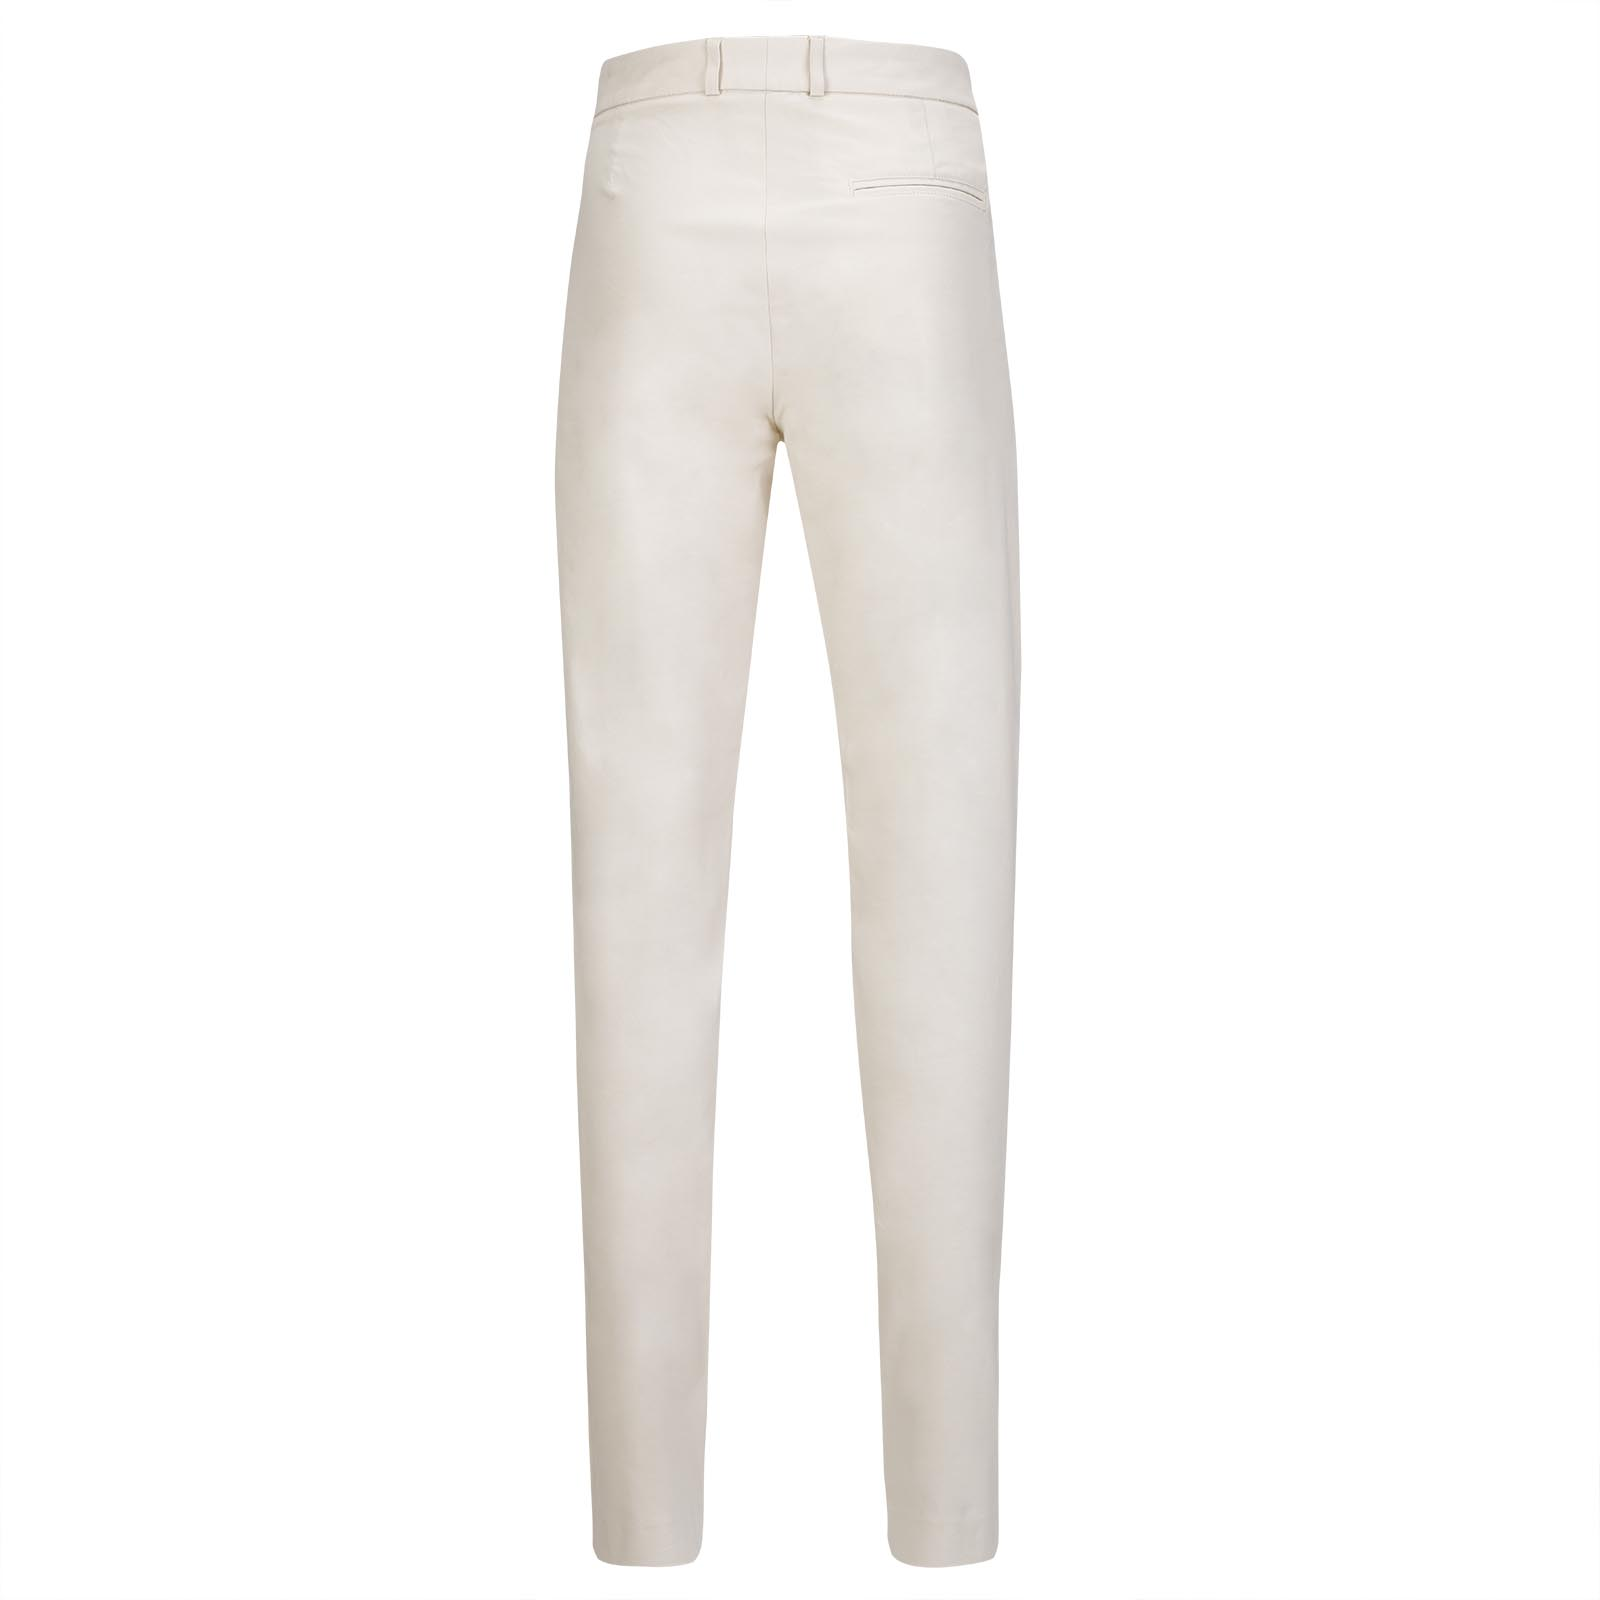 Ladies' Premium Golf techno stretch trousers with UV protection and cotton